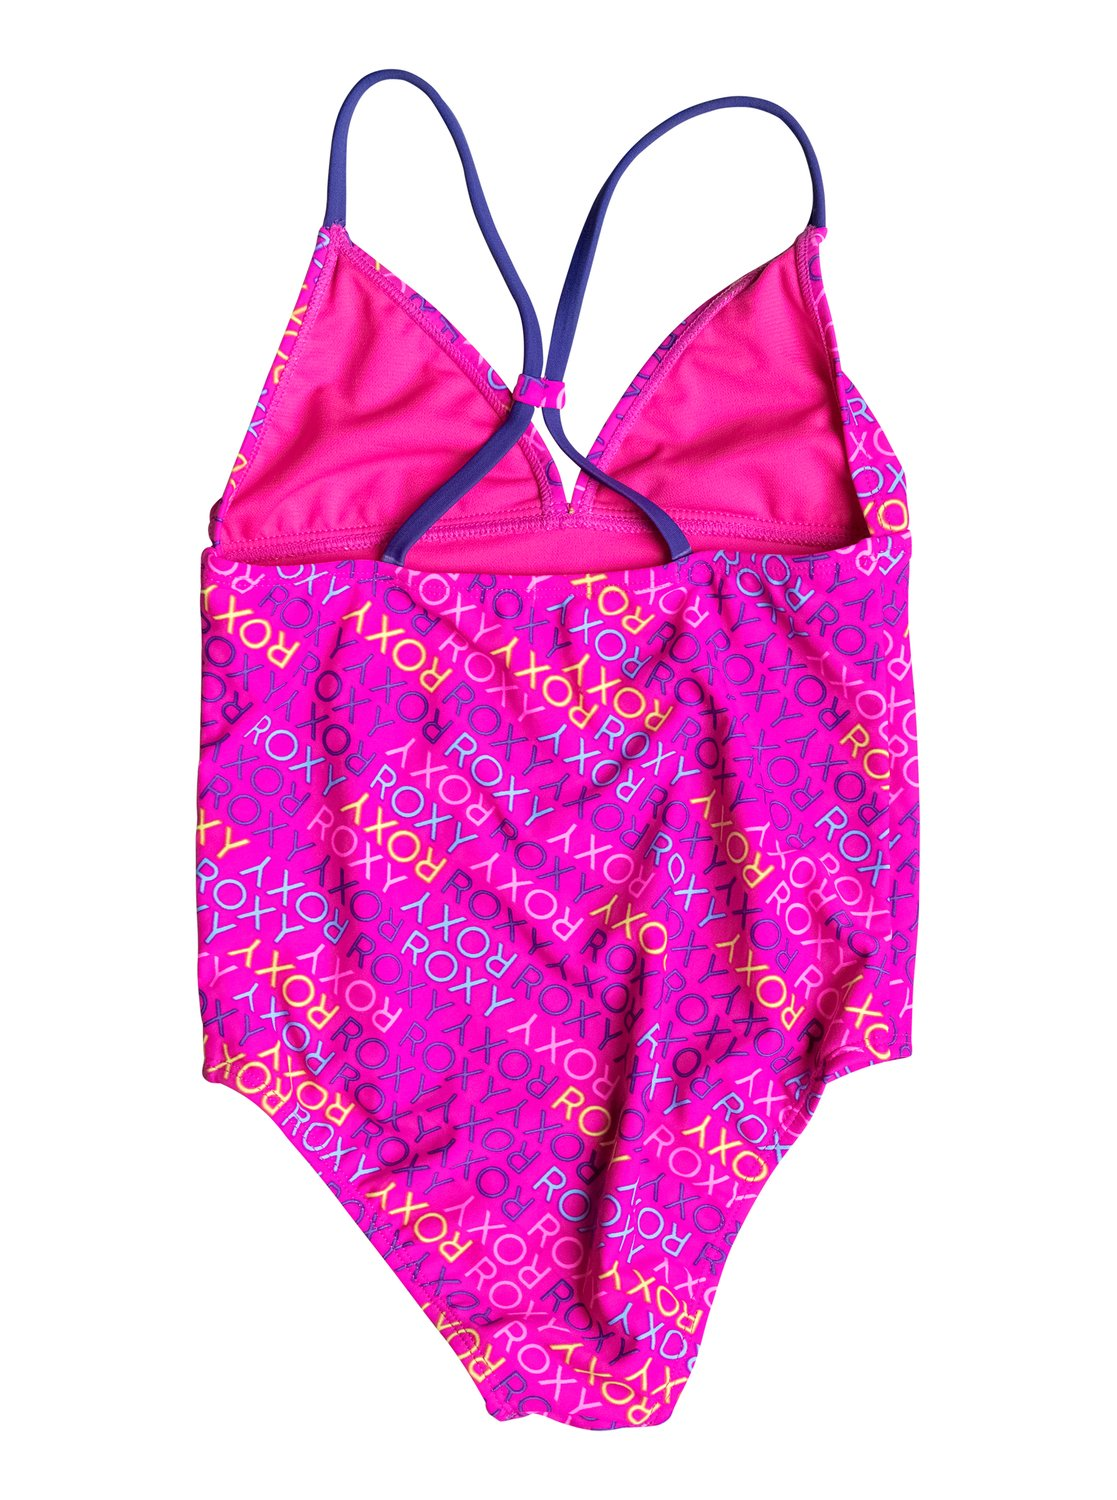 Roxy Swimsuits For Girls Walmart Saved Items